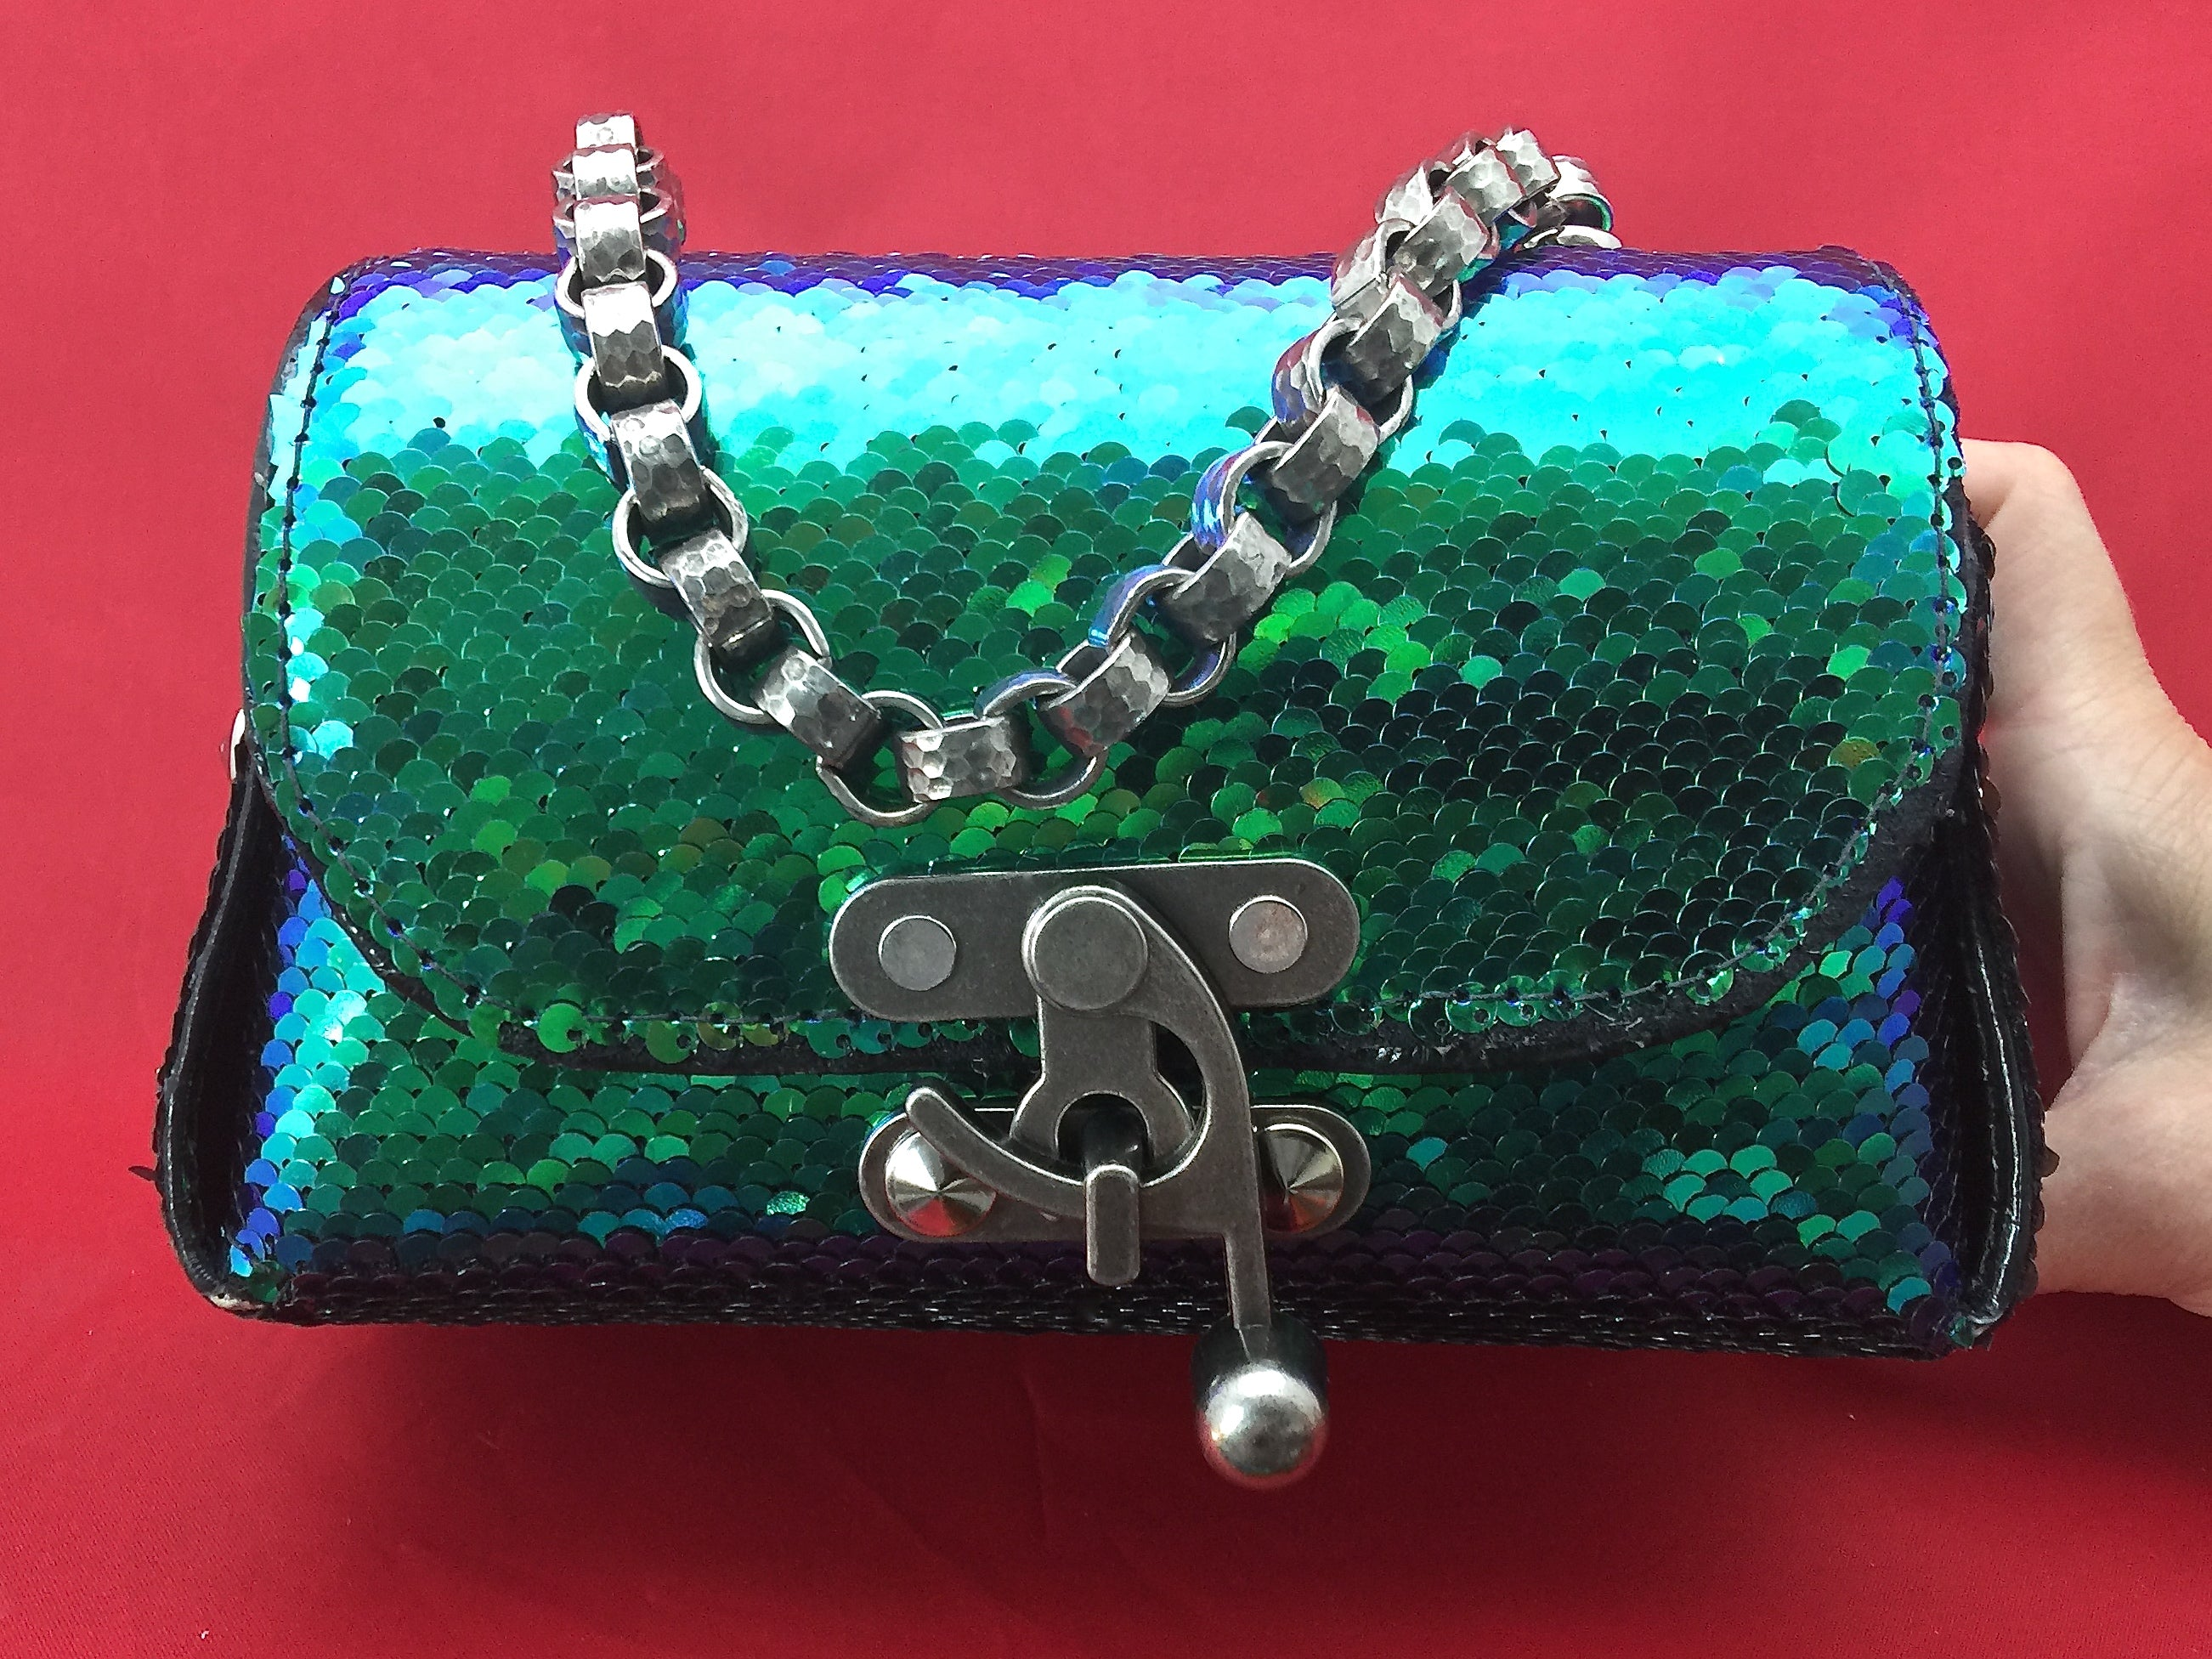 aae905024f98 ... Nyet Jewelry The Siren Call leather and sequins lunch box evening bag  Silver